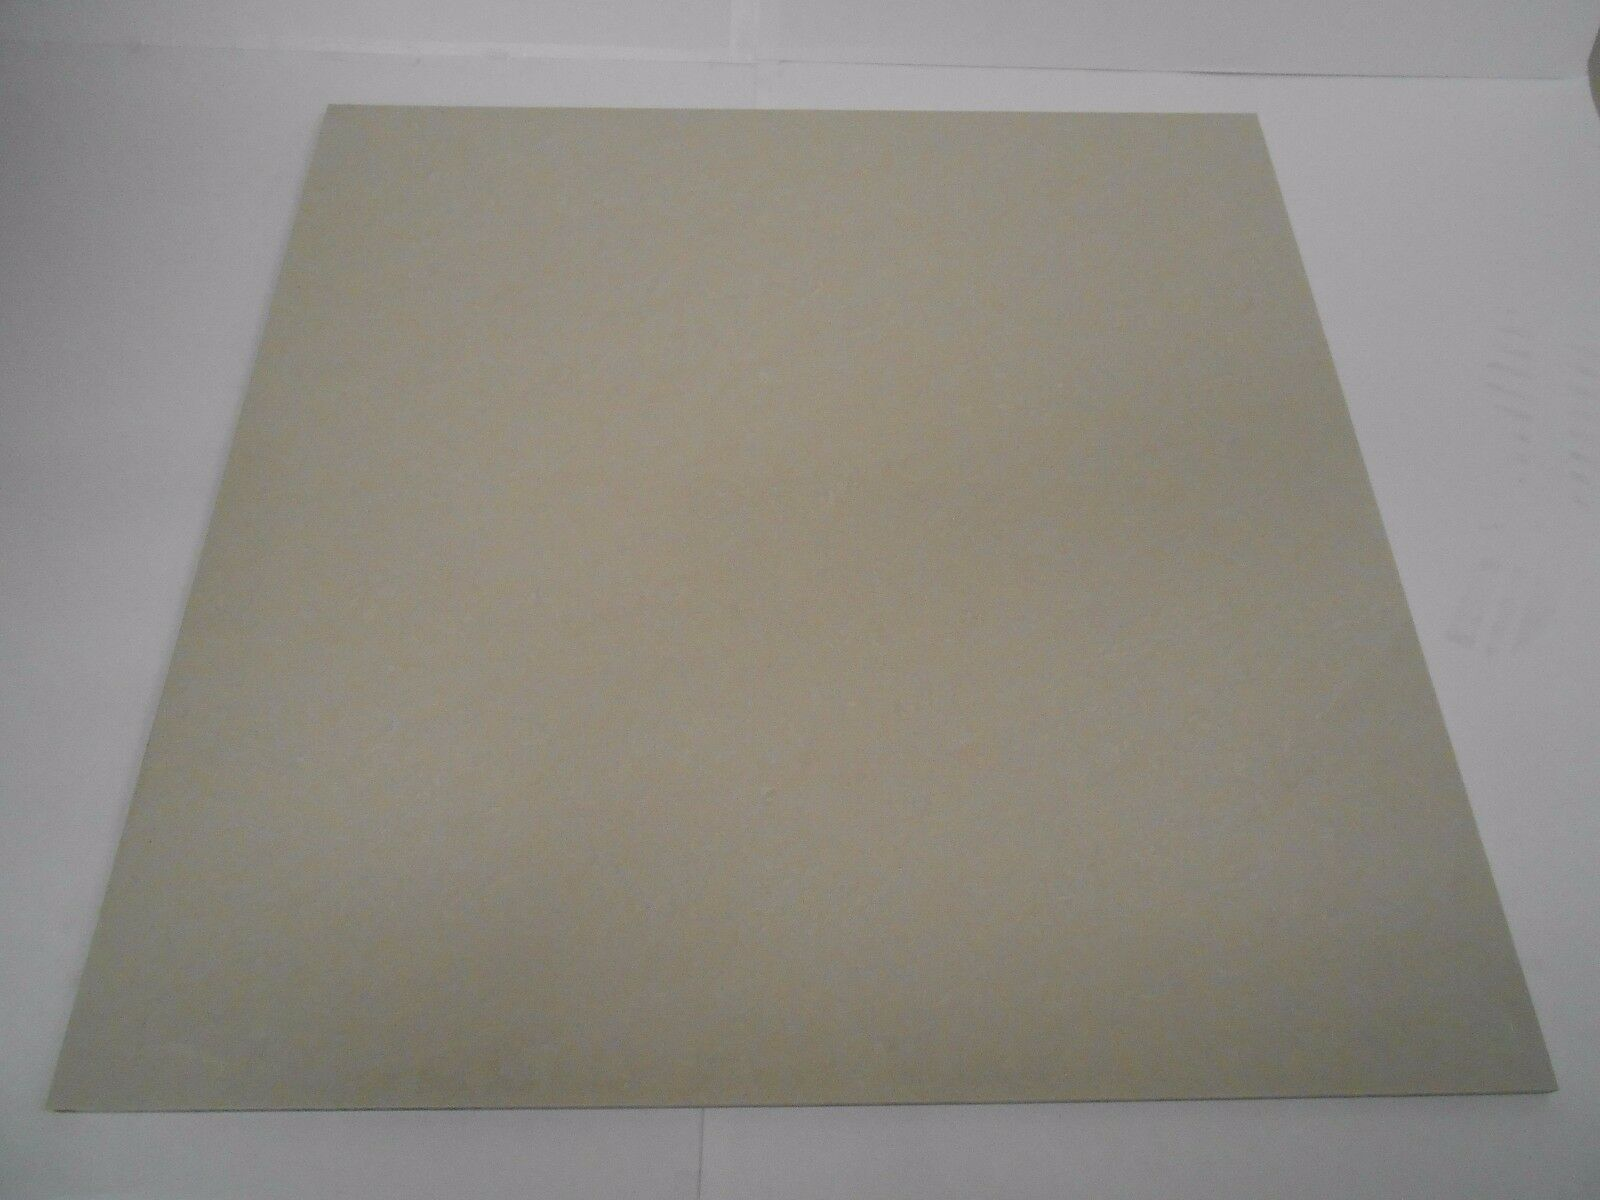 Polished Porcelain Tile Rectified 32x32 Beach Summer Beige  2.19 sqft Floor Nano